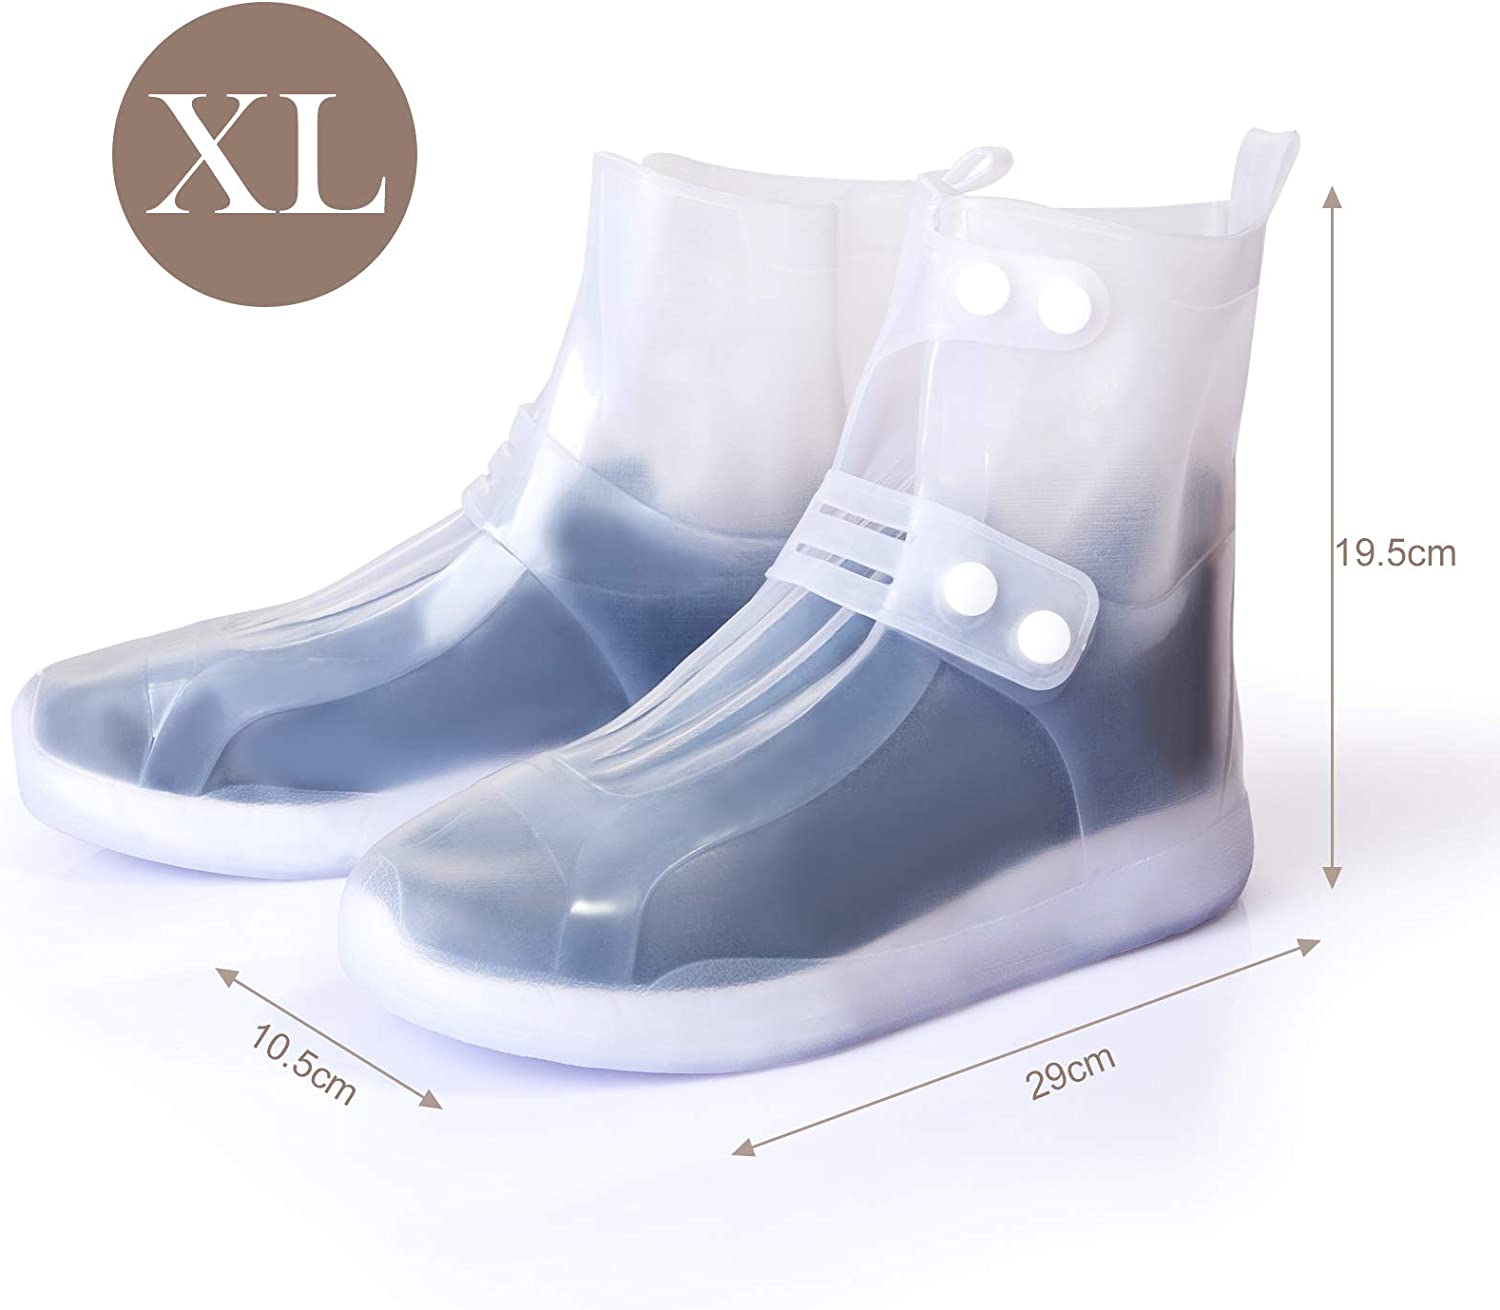 GWHOLE Rain Shoes Cover Silicone Overshoes Waterproof for Men and Women